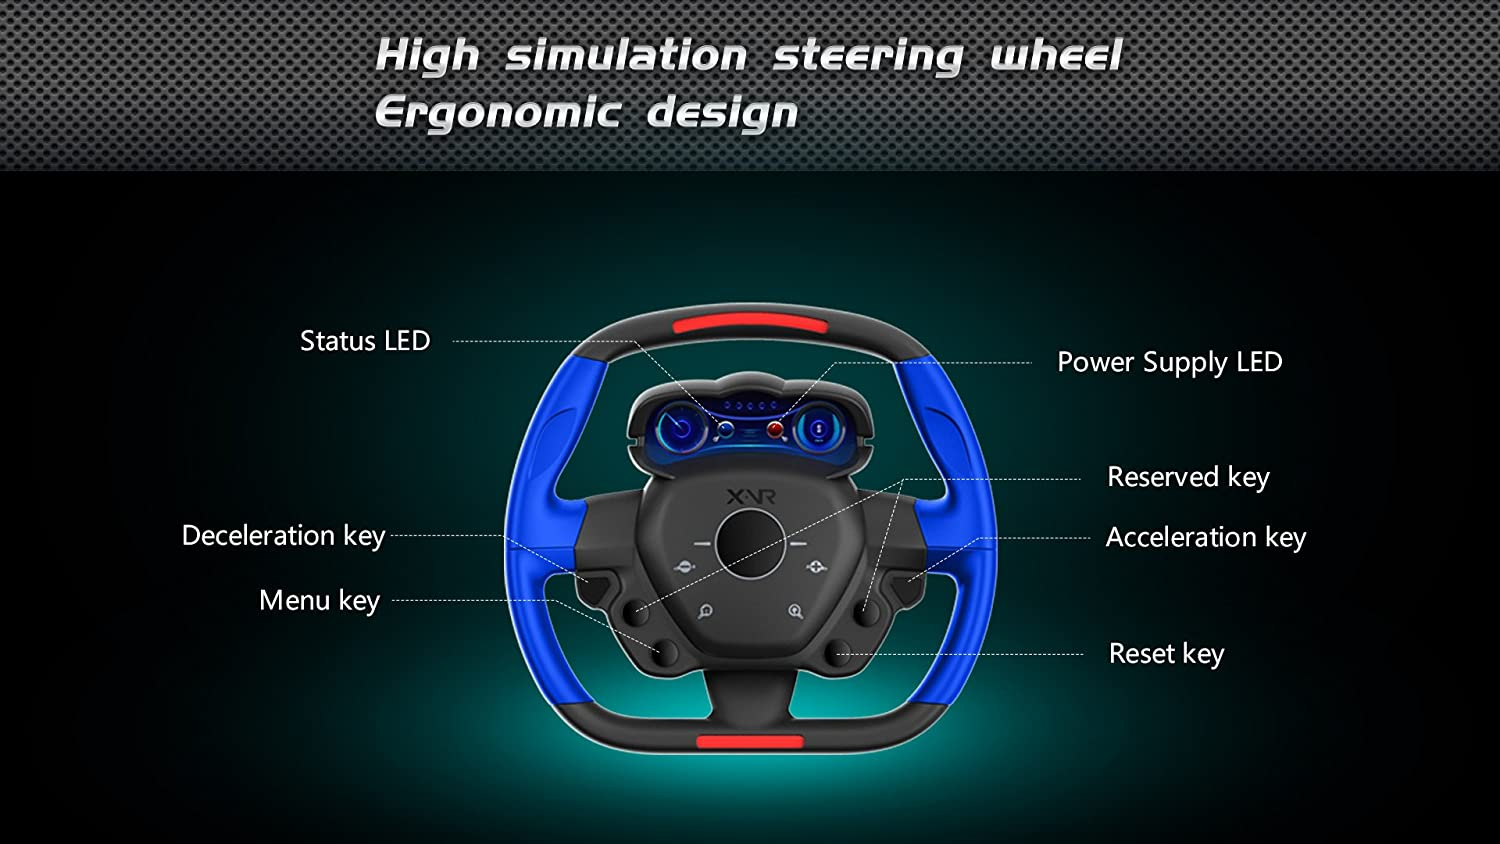 Resulzon 3d Vr Glasses Virtual Reality Headset For Moto Mirror Switch Wiring Diagram Racing Games Bluetooth Connection 360panoramic Force Feedback Steering Wheel